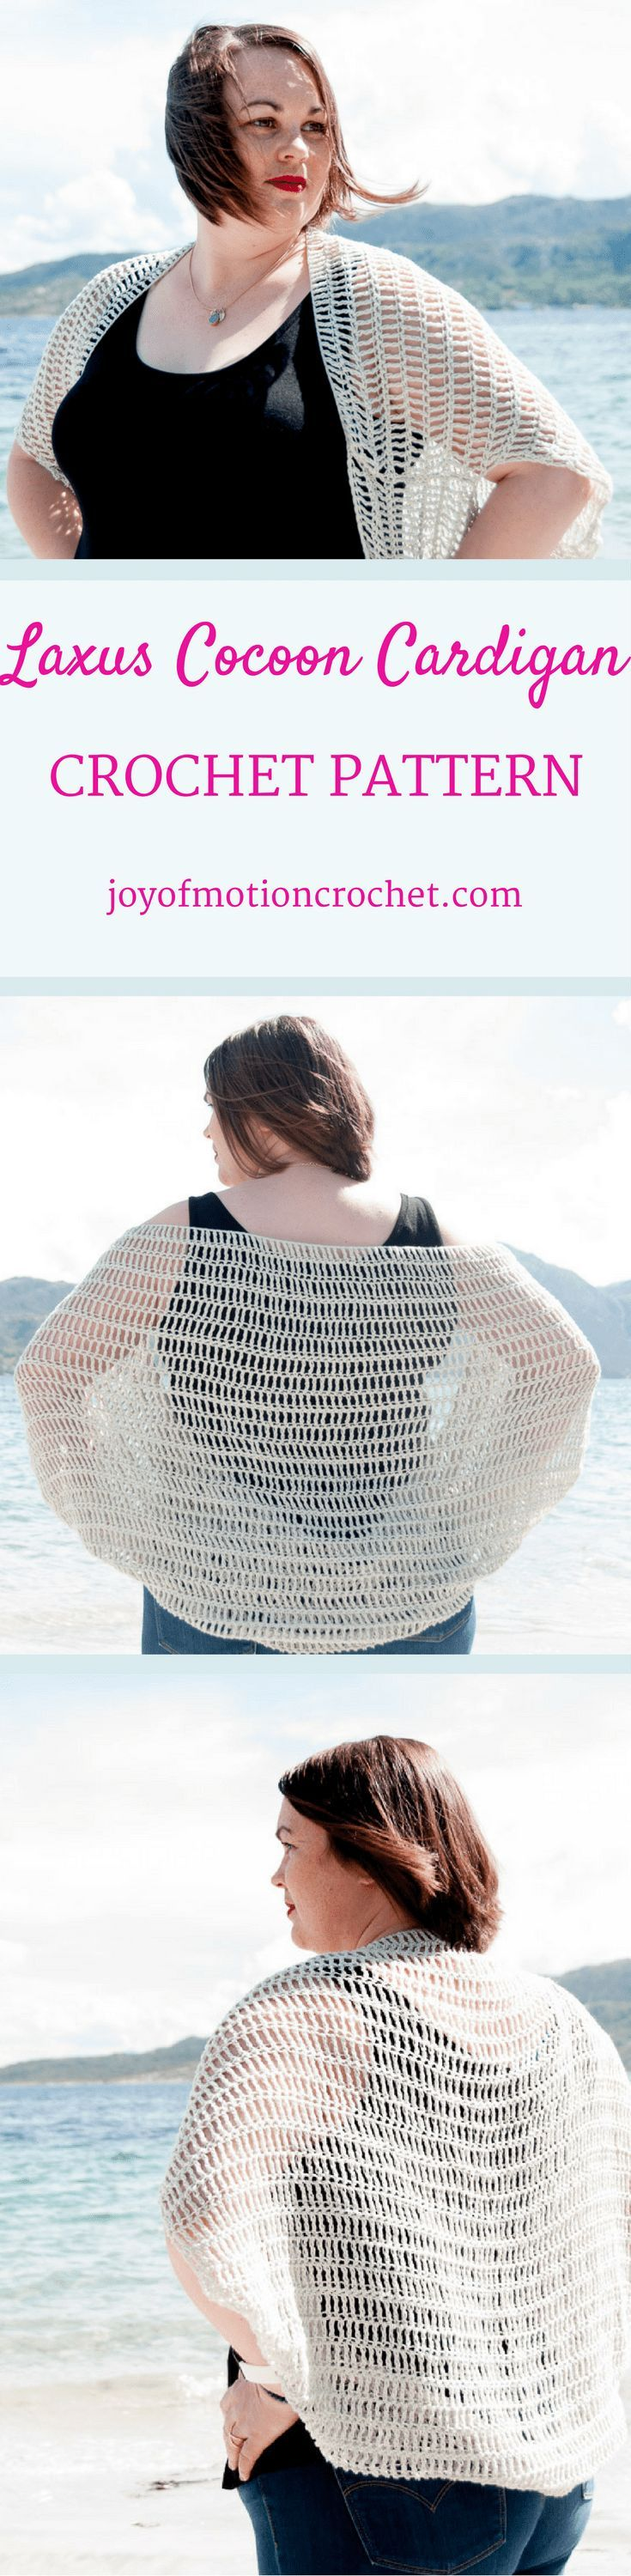 The Laxus Cocoon Cardigan Crochet pattern. Beginner crochet pattern. Woman's cocoon cardigan. Cocoon sweater. Crochet cocoon cardigan. Crochet Cocoon Sweater. Crochet cocoon blanket sweater.  Crochet cocoon shrug.  Crochet cocoon pattern. via @http://pinterest.com/joyofmotion/